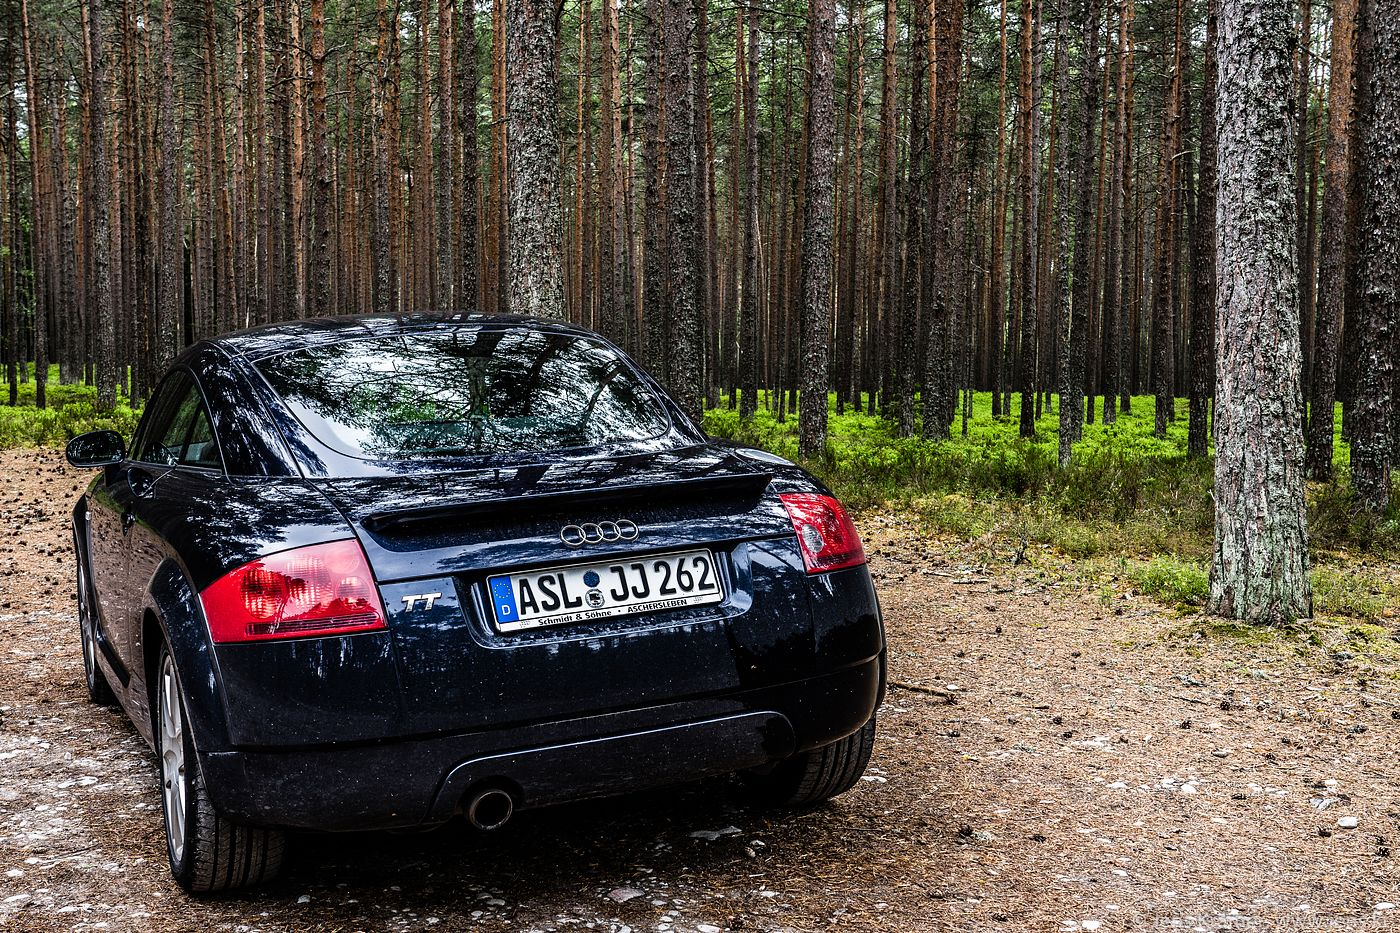 TT in the Forest